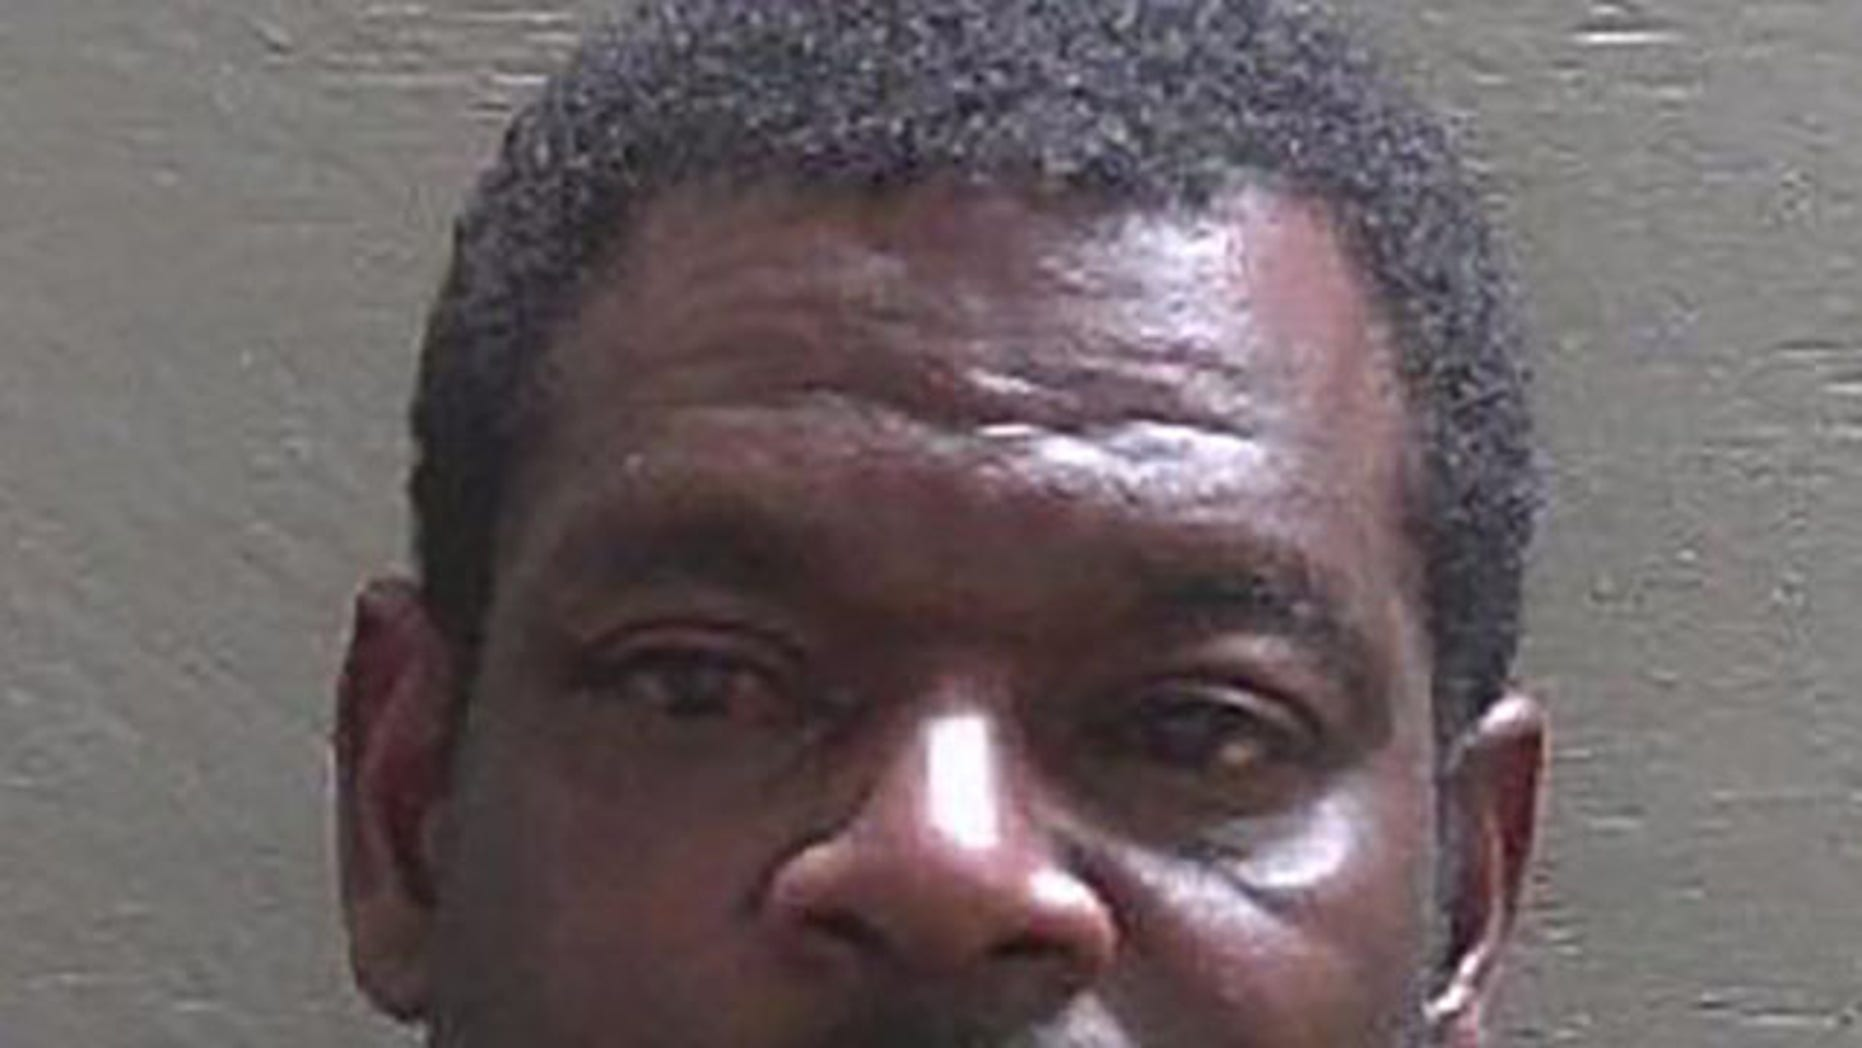 Joseph Riley, 45, was arrested after he allegedly tried to run his son over with a pickup truck because he had refused to take a bath, reports said.